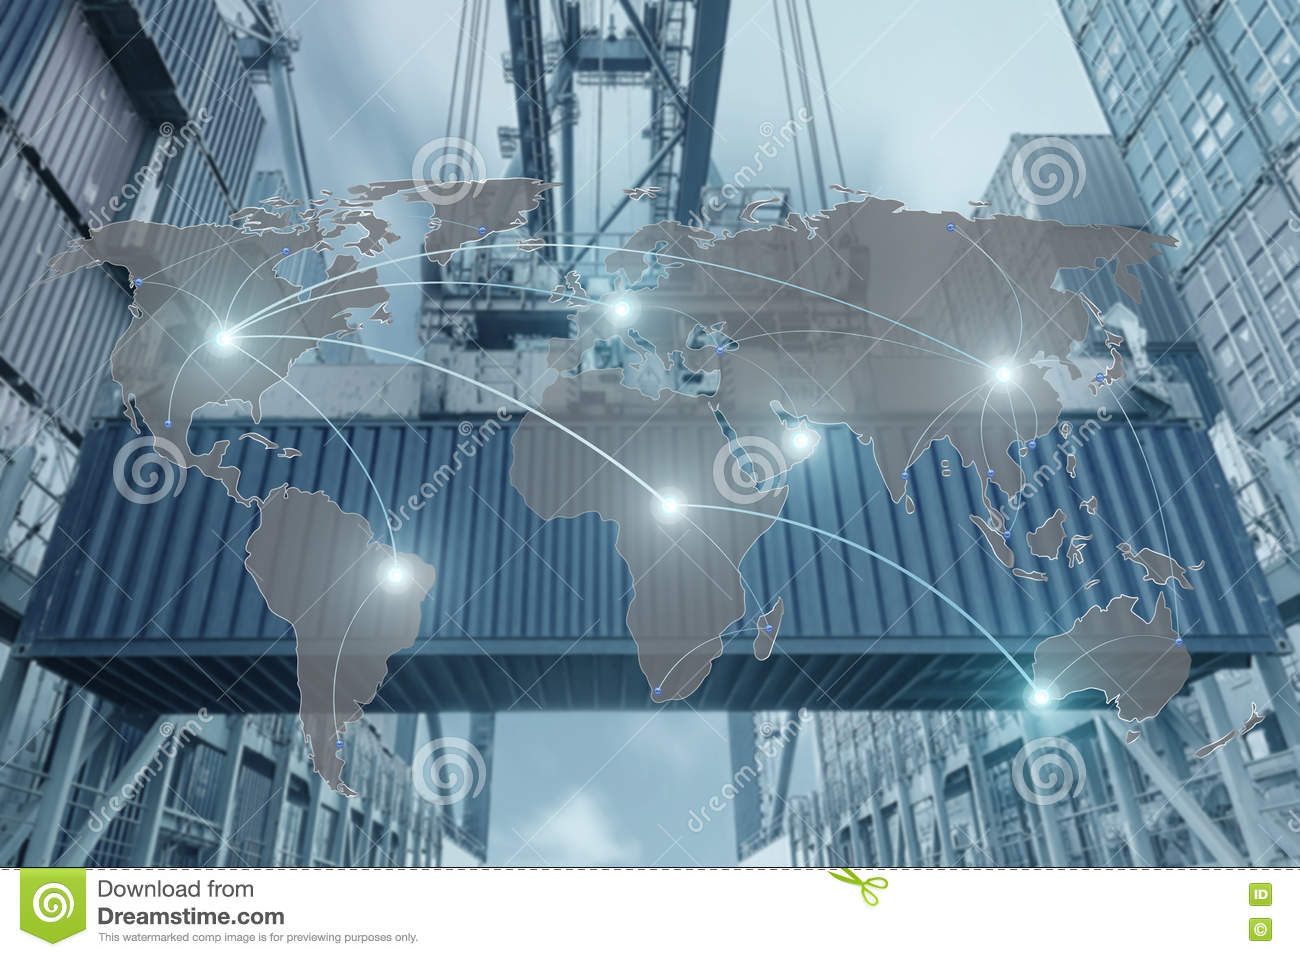 Import, Export, Logistics concept - Map global partner connection of Container Cargo freight ship for Logistic Import Export back